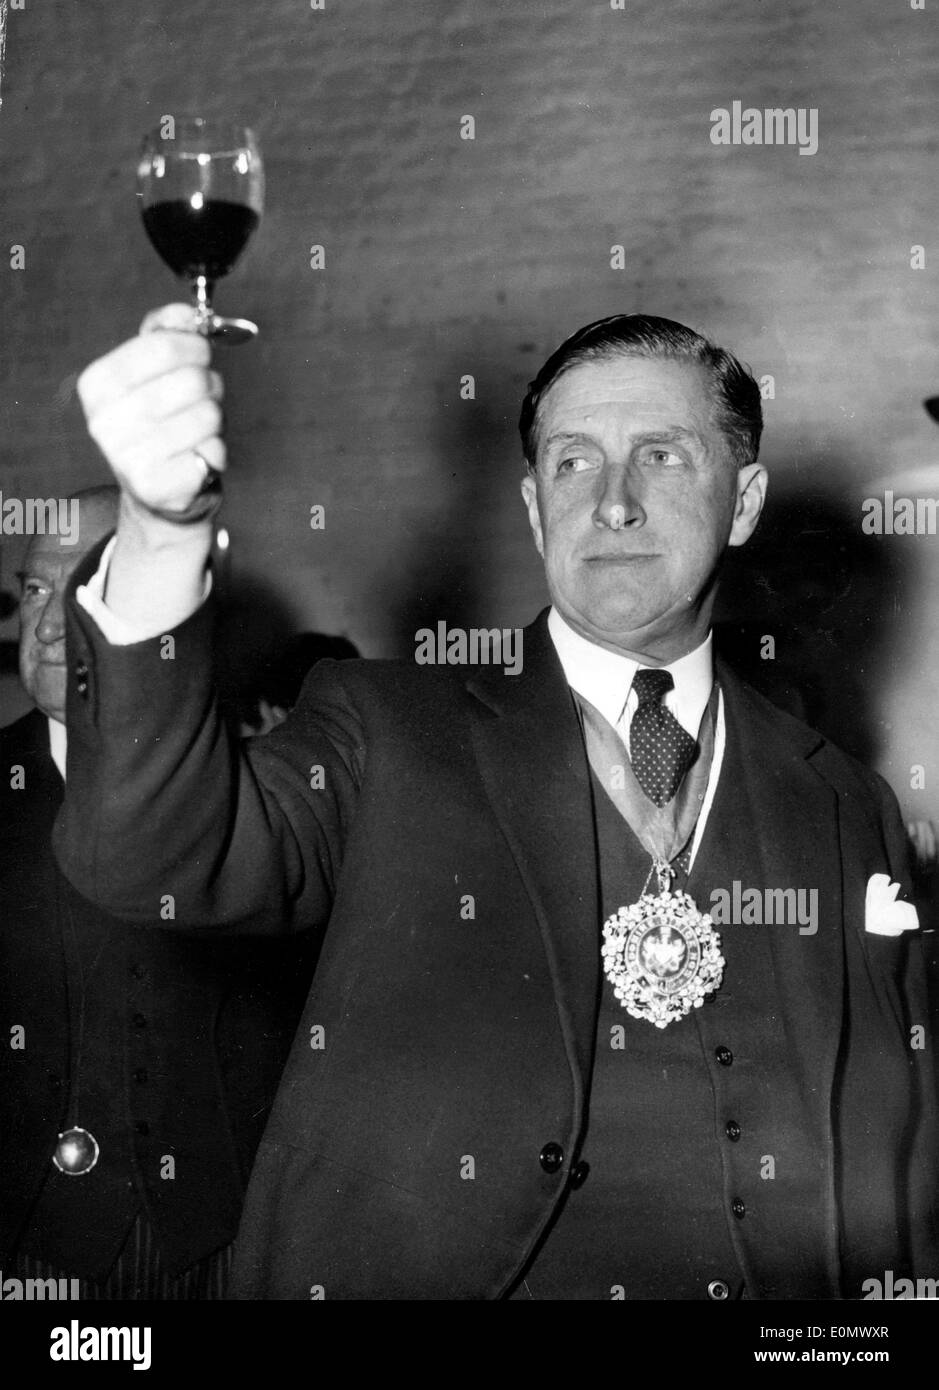 Lord Mayor Cuthbert Ackroyd at a wine tasting - Stock Image